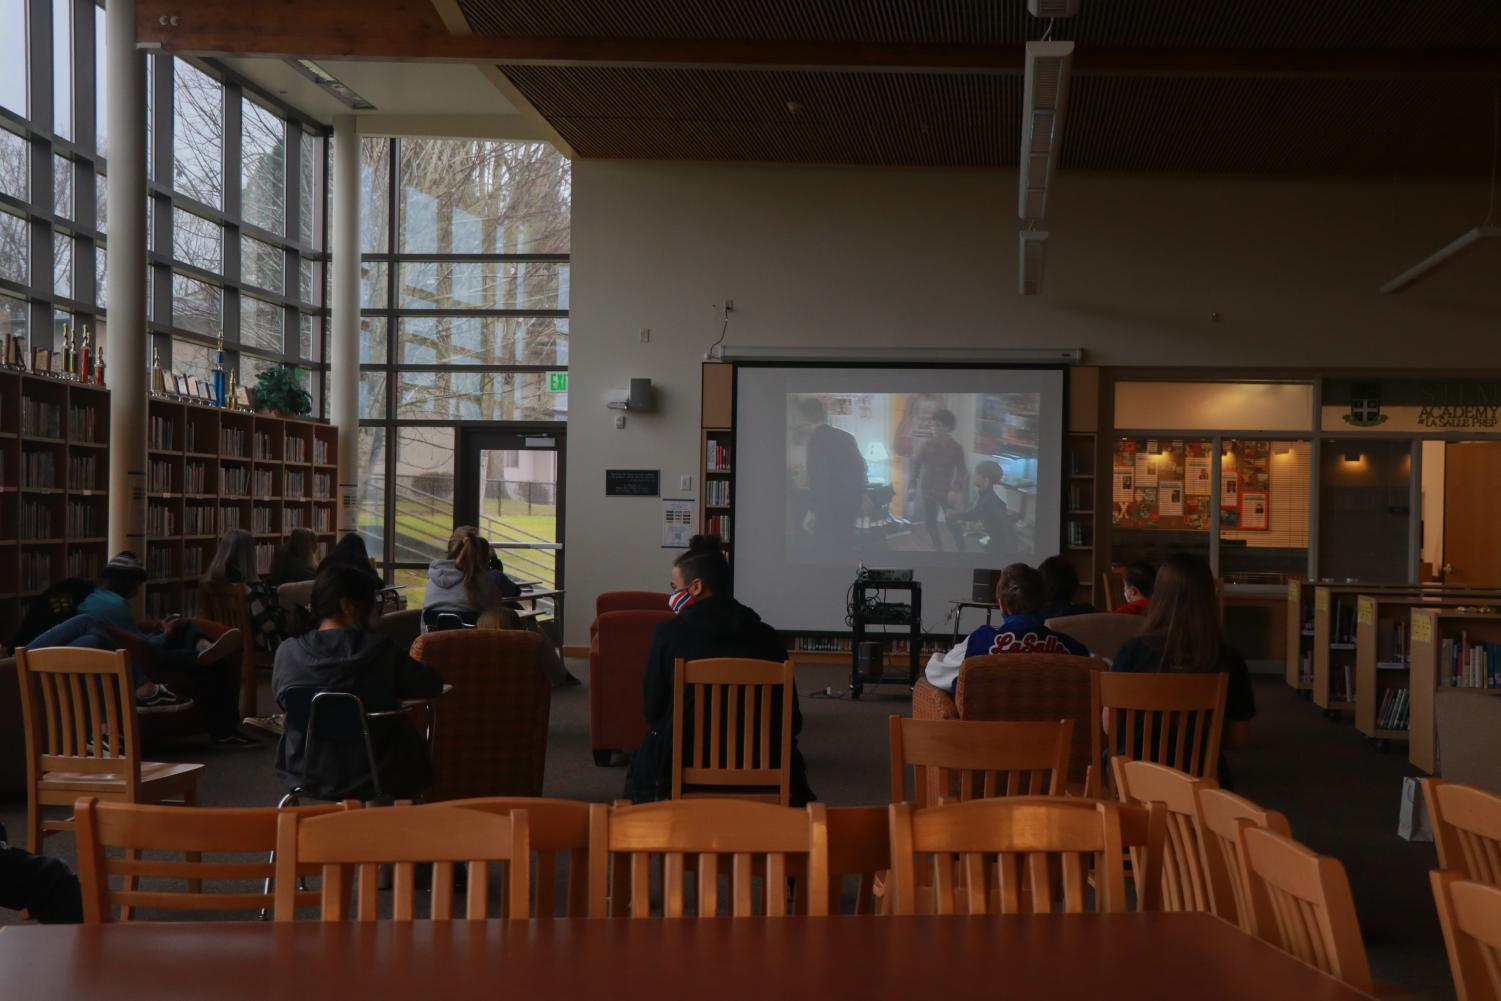 Students+Gather+on+Campus+for+a+Christmas+Film+Festival